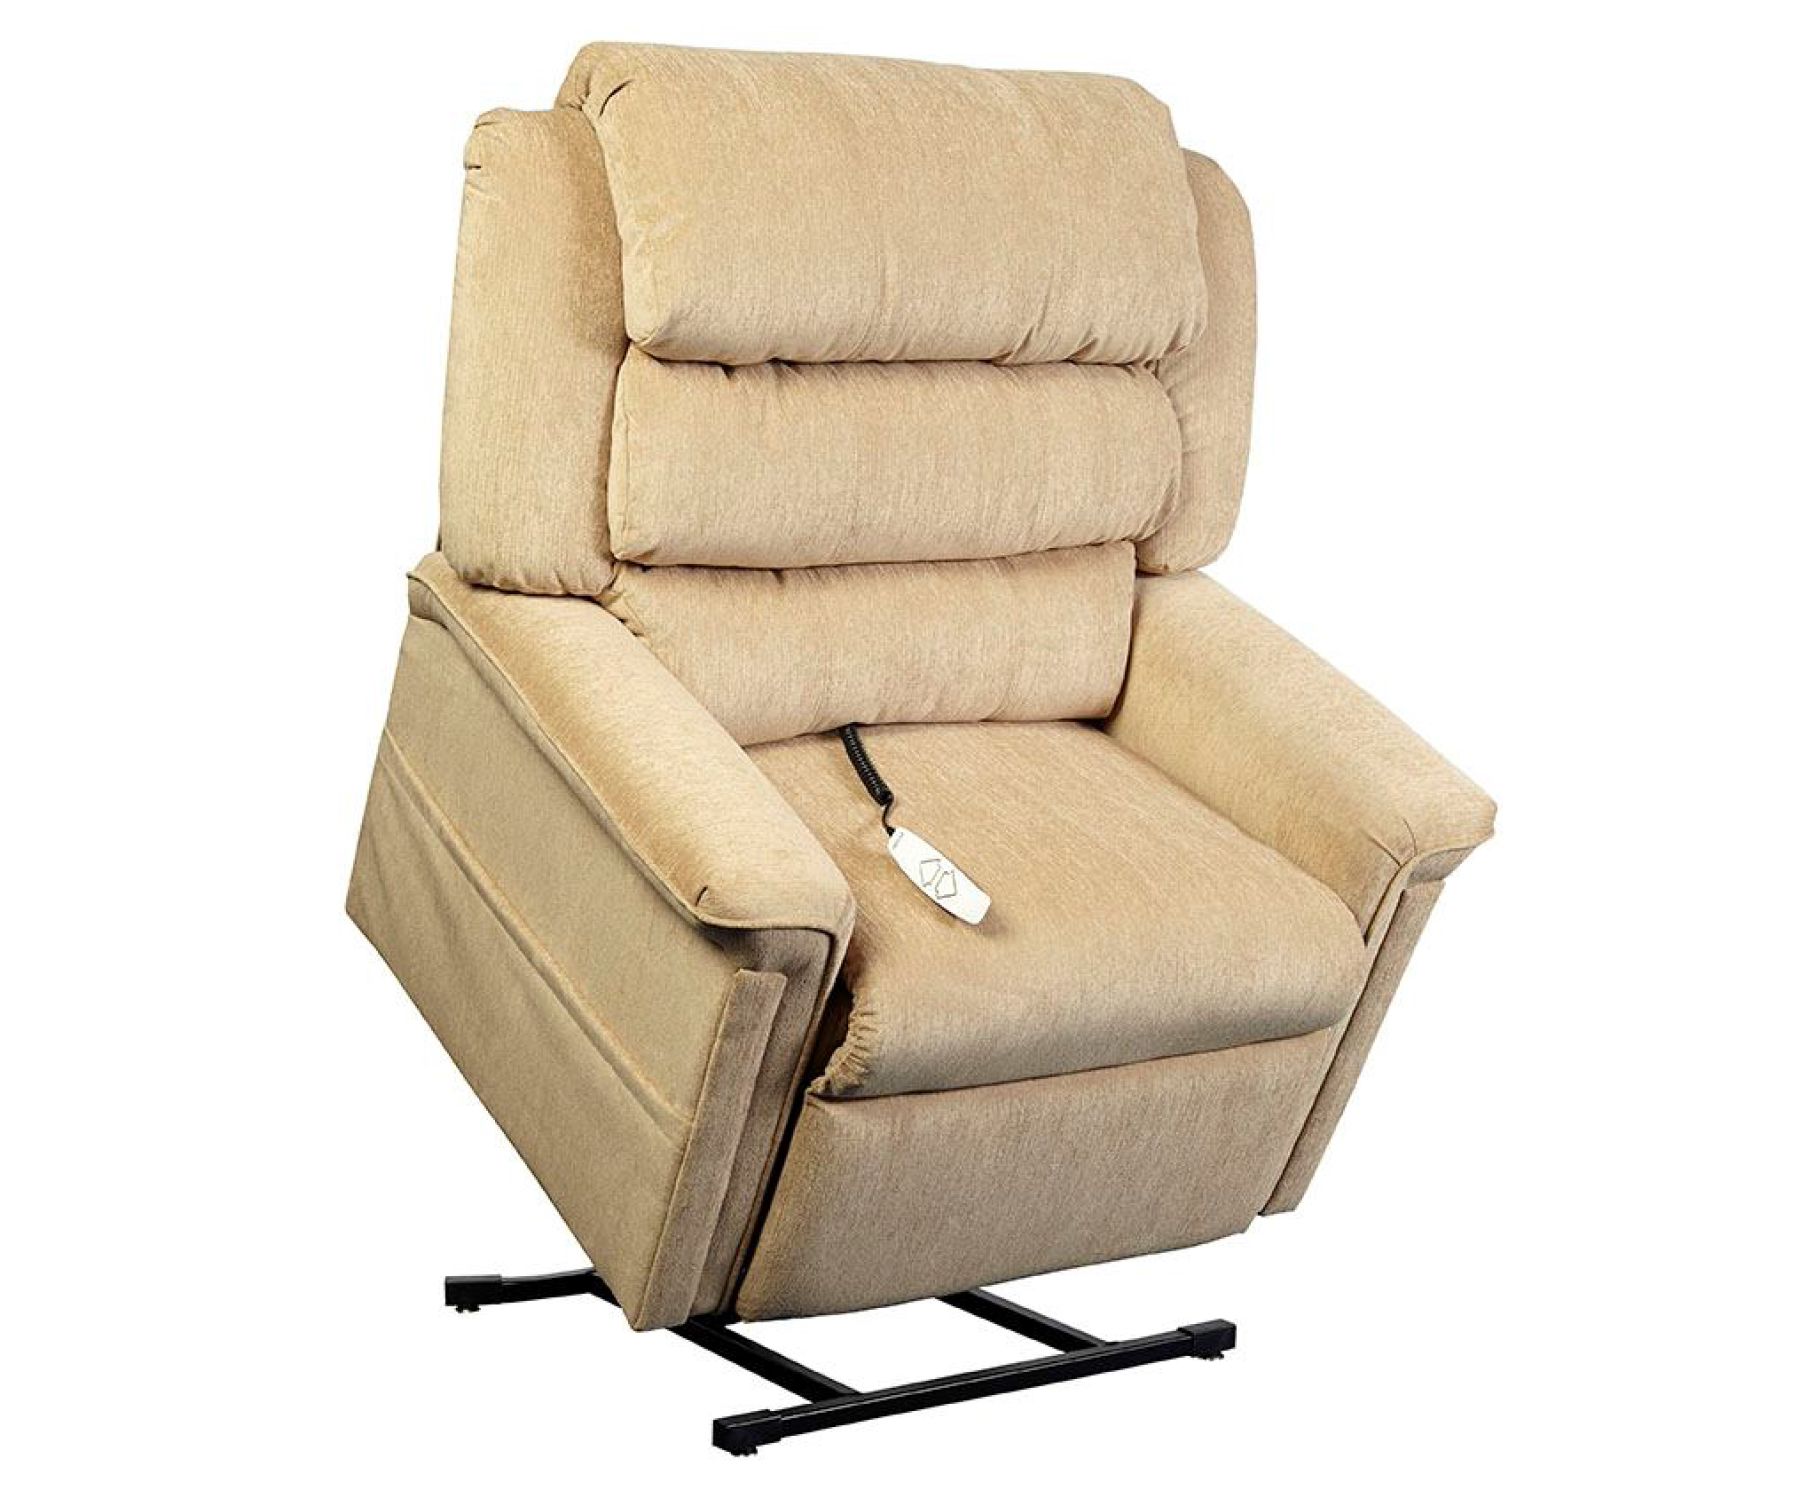 Windermere Carson NM1450 Three Position Electric Power Recliner